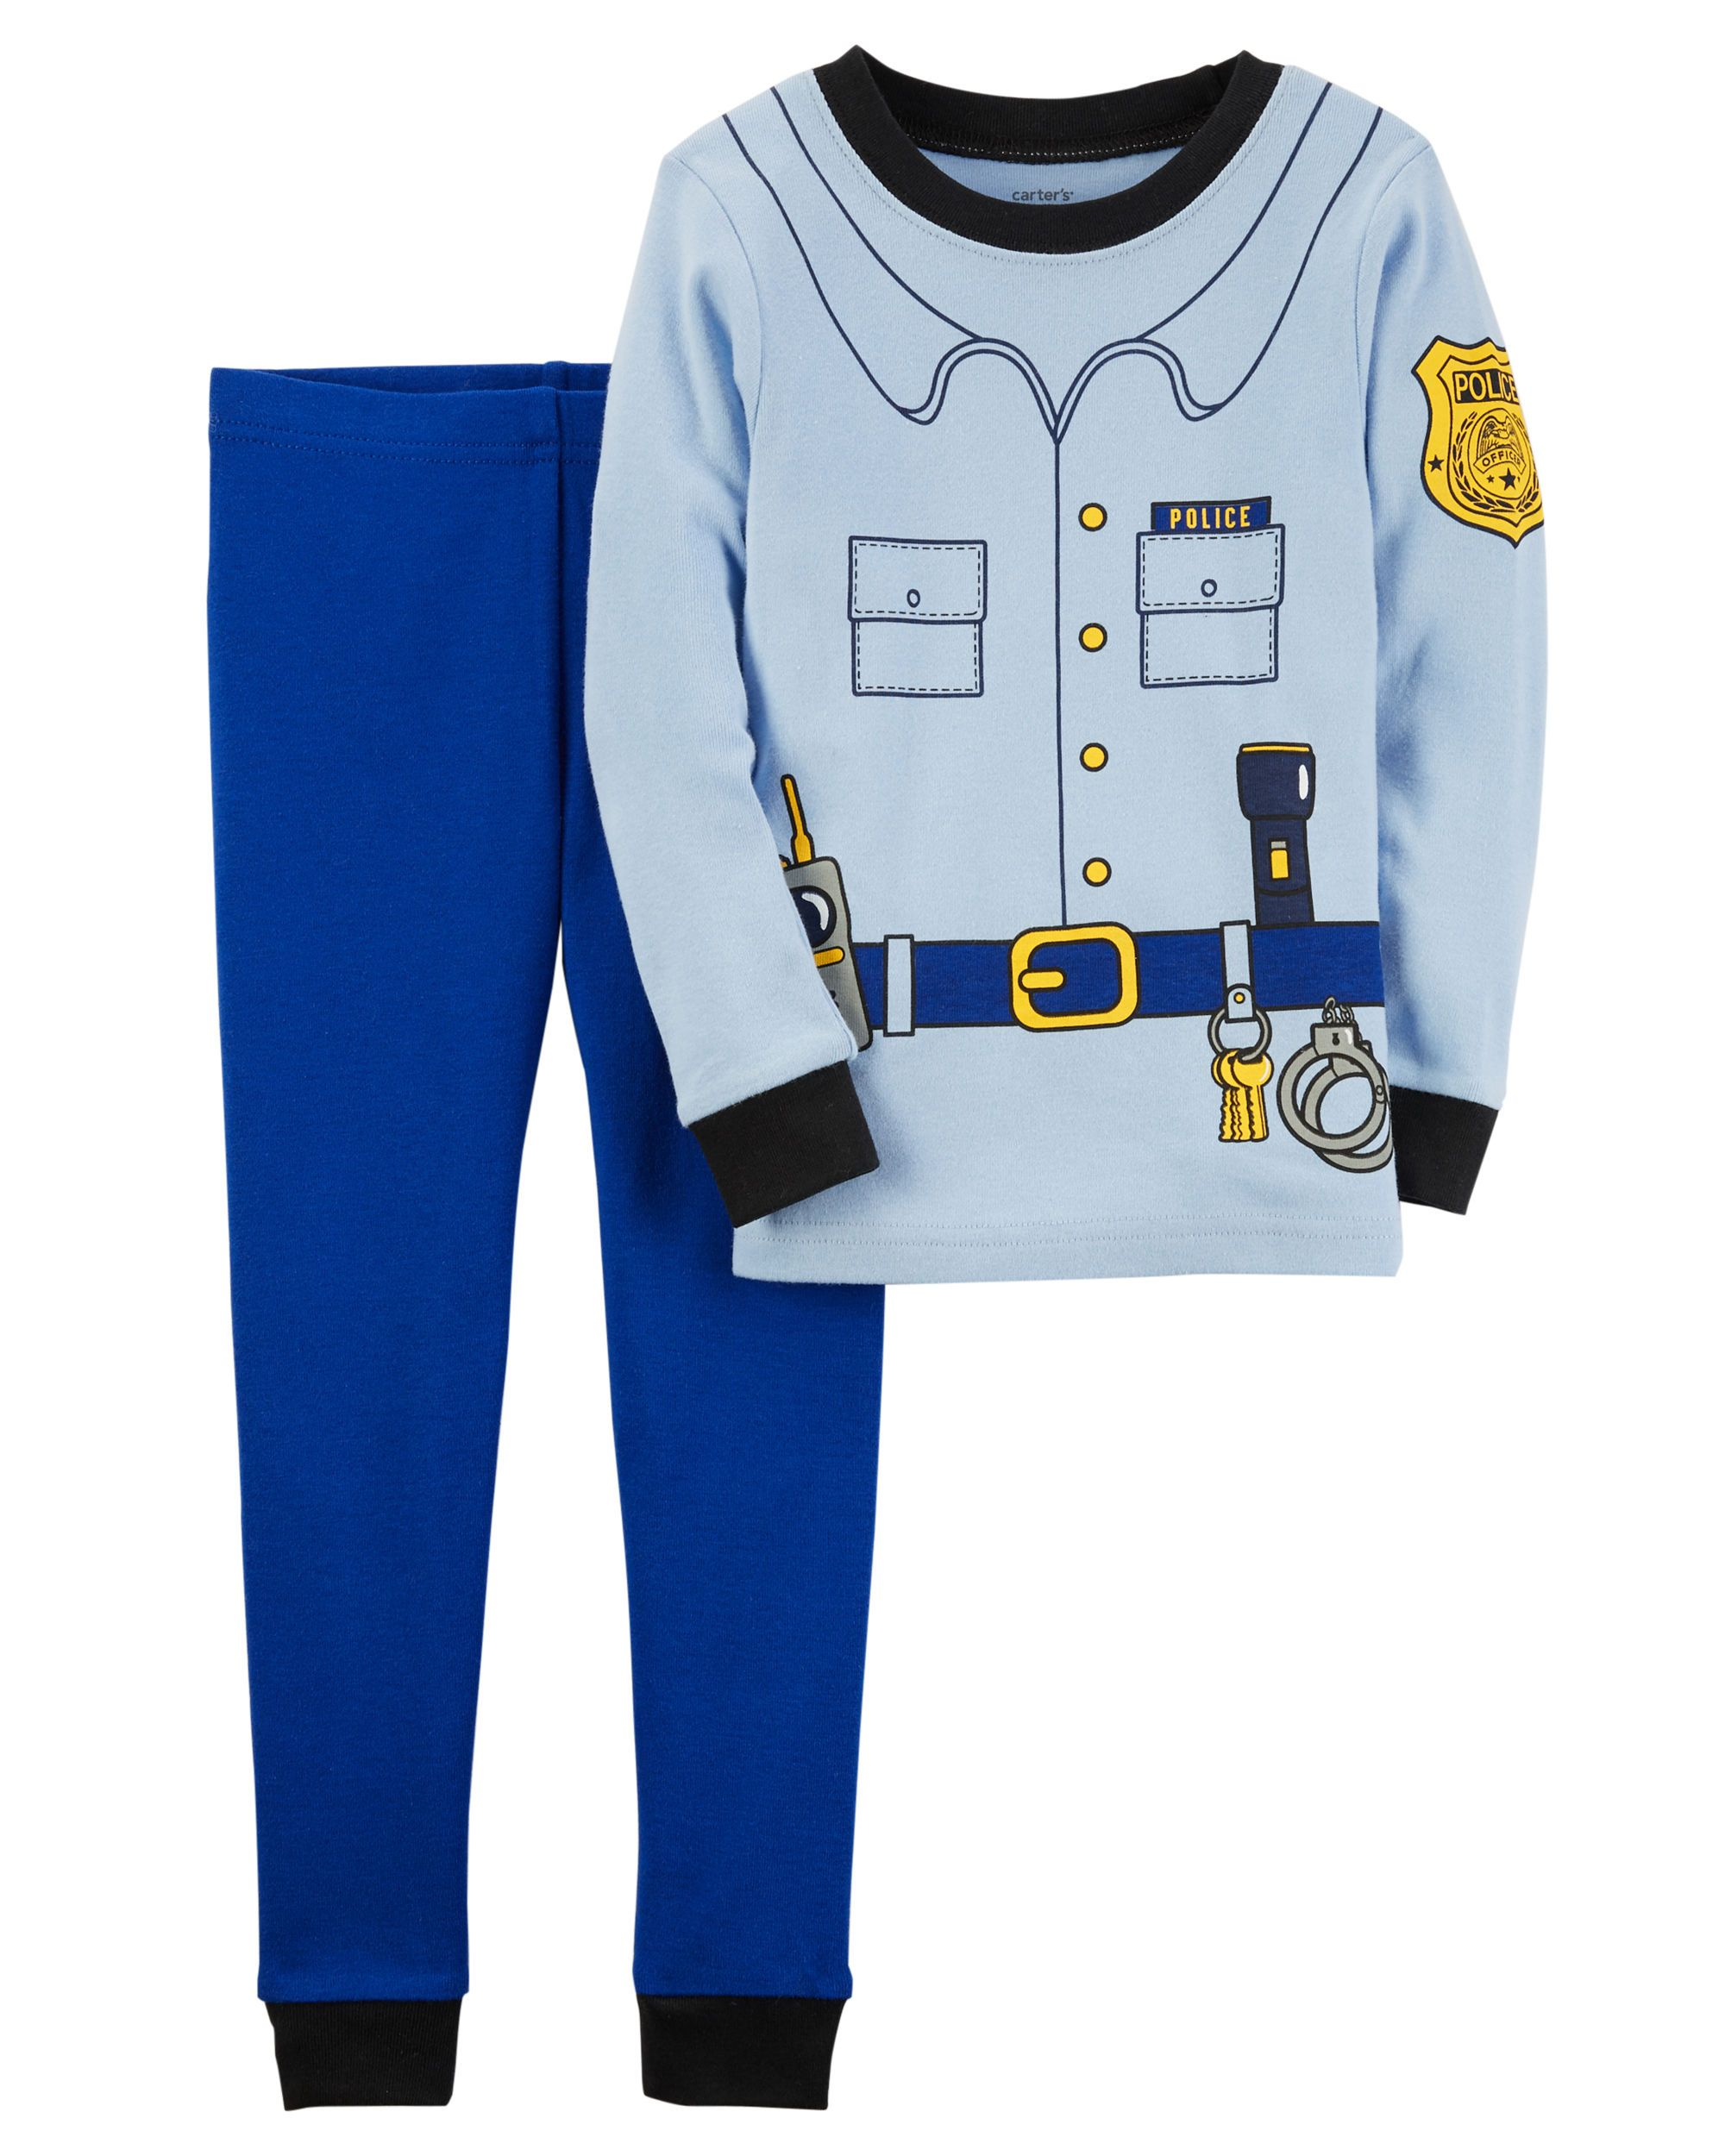 2f0a07917 2-Piece Police Officer Snug Fit Cotton PJs